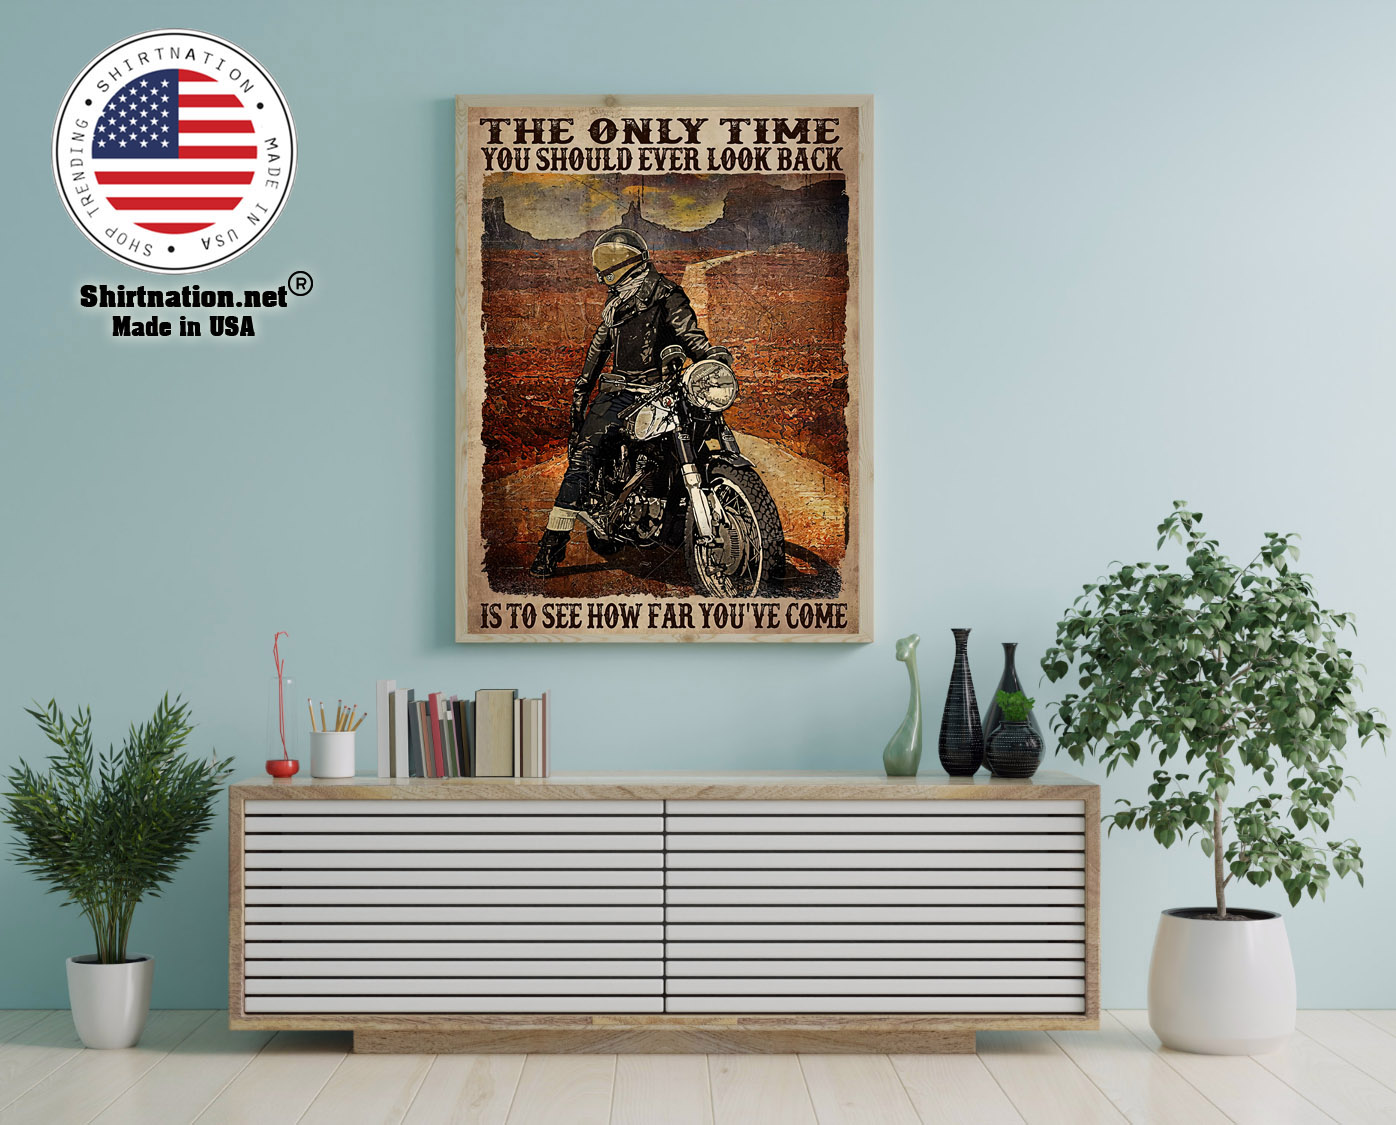 Motorcycle The only time you should ever look back is to see how far youve come poster 12 1